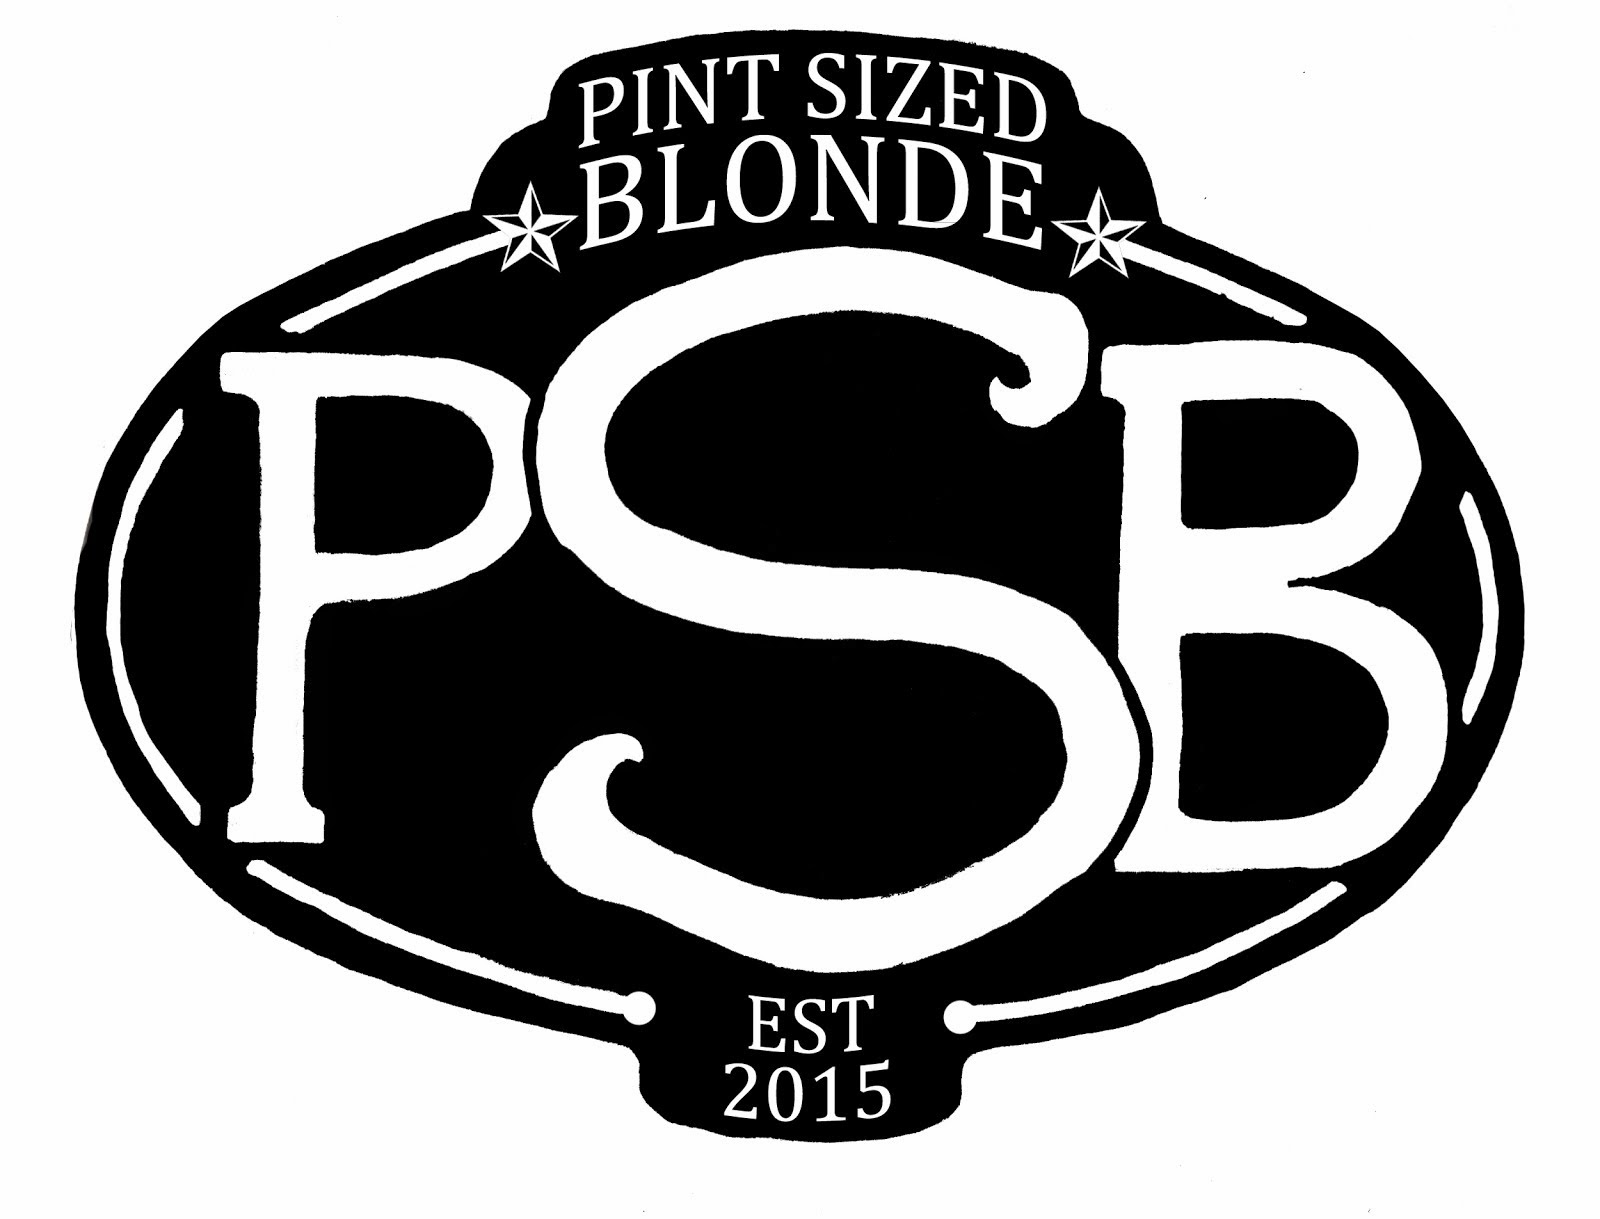 Pint Sized Blonde